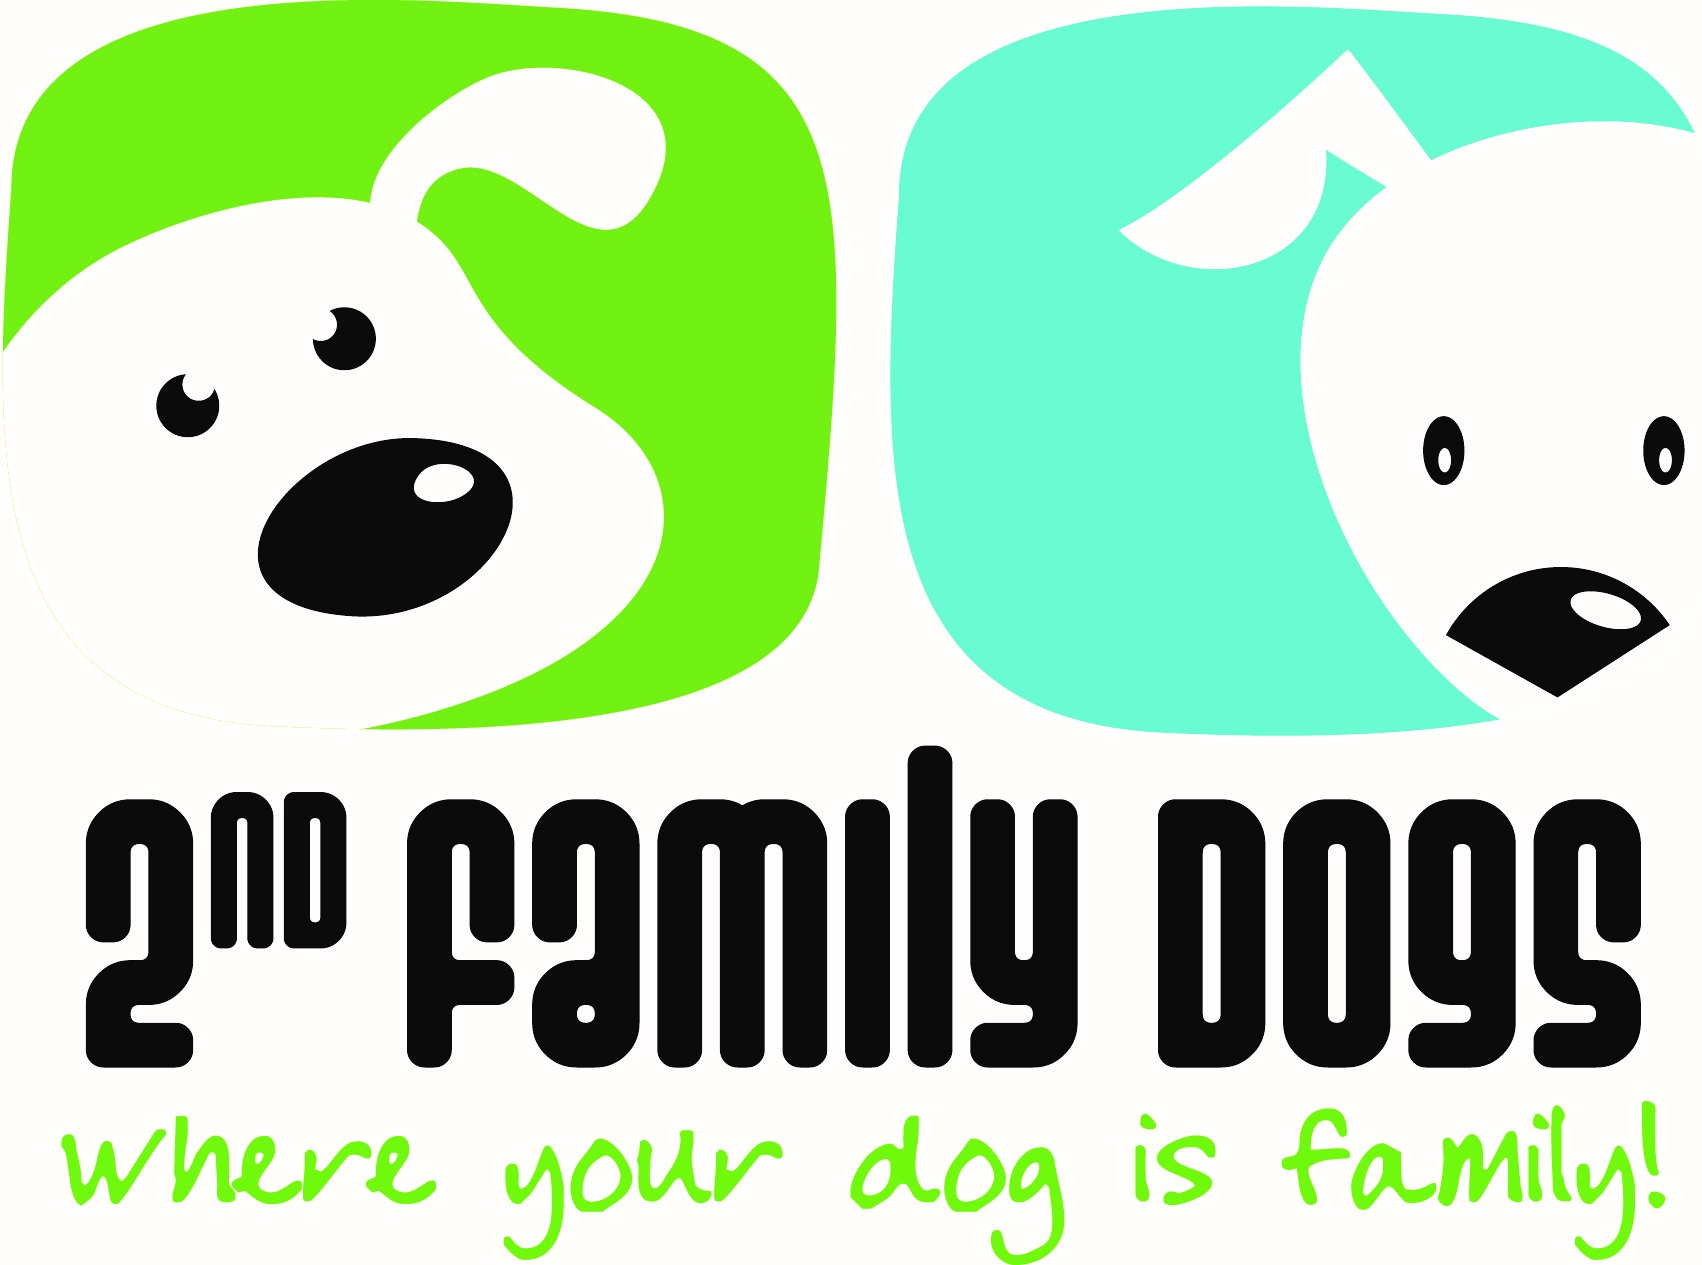 2nd Family Dogs logo.jpg